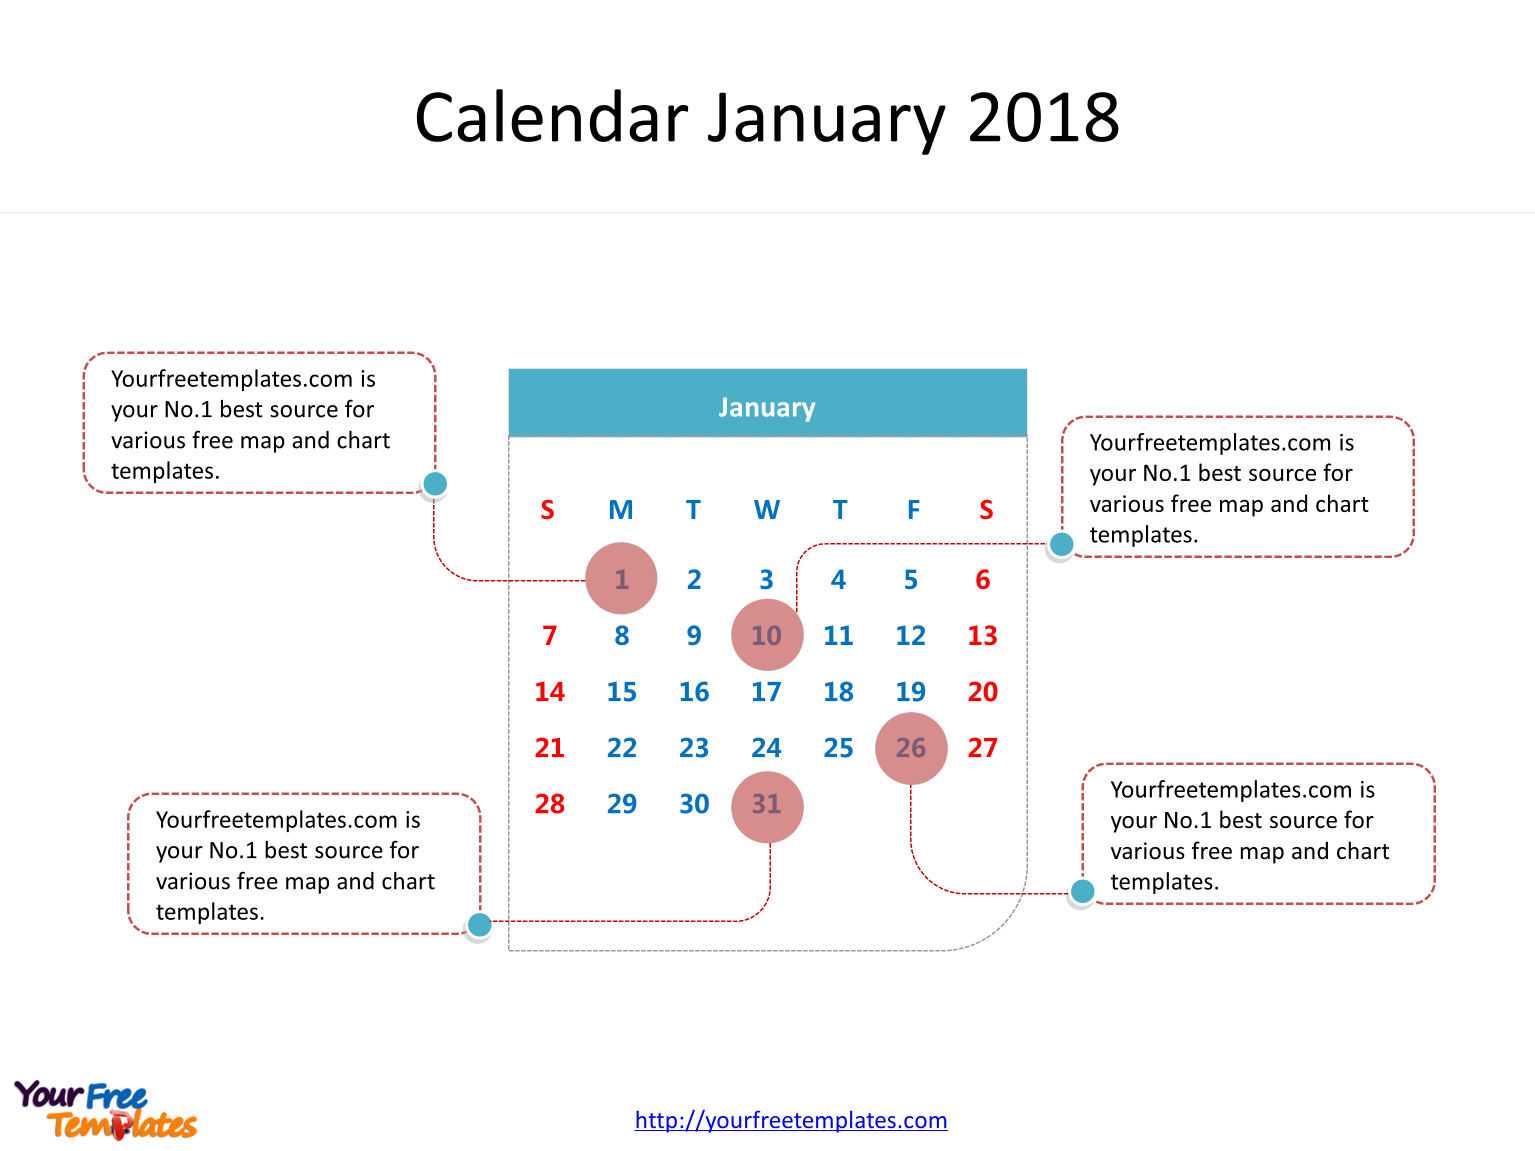 calendar 2018 with dates of one month in it